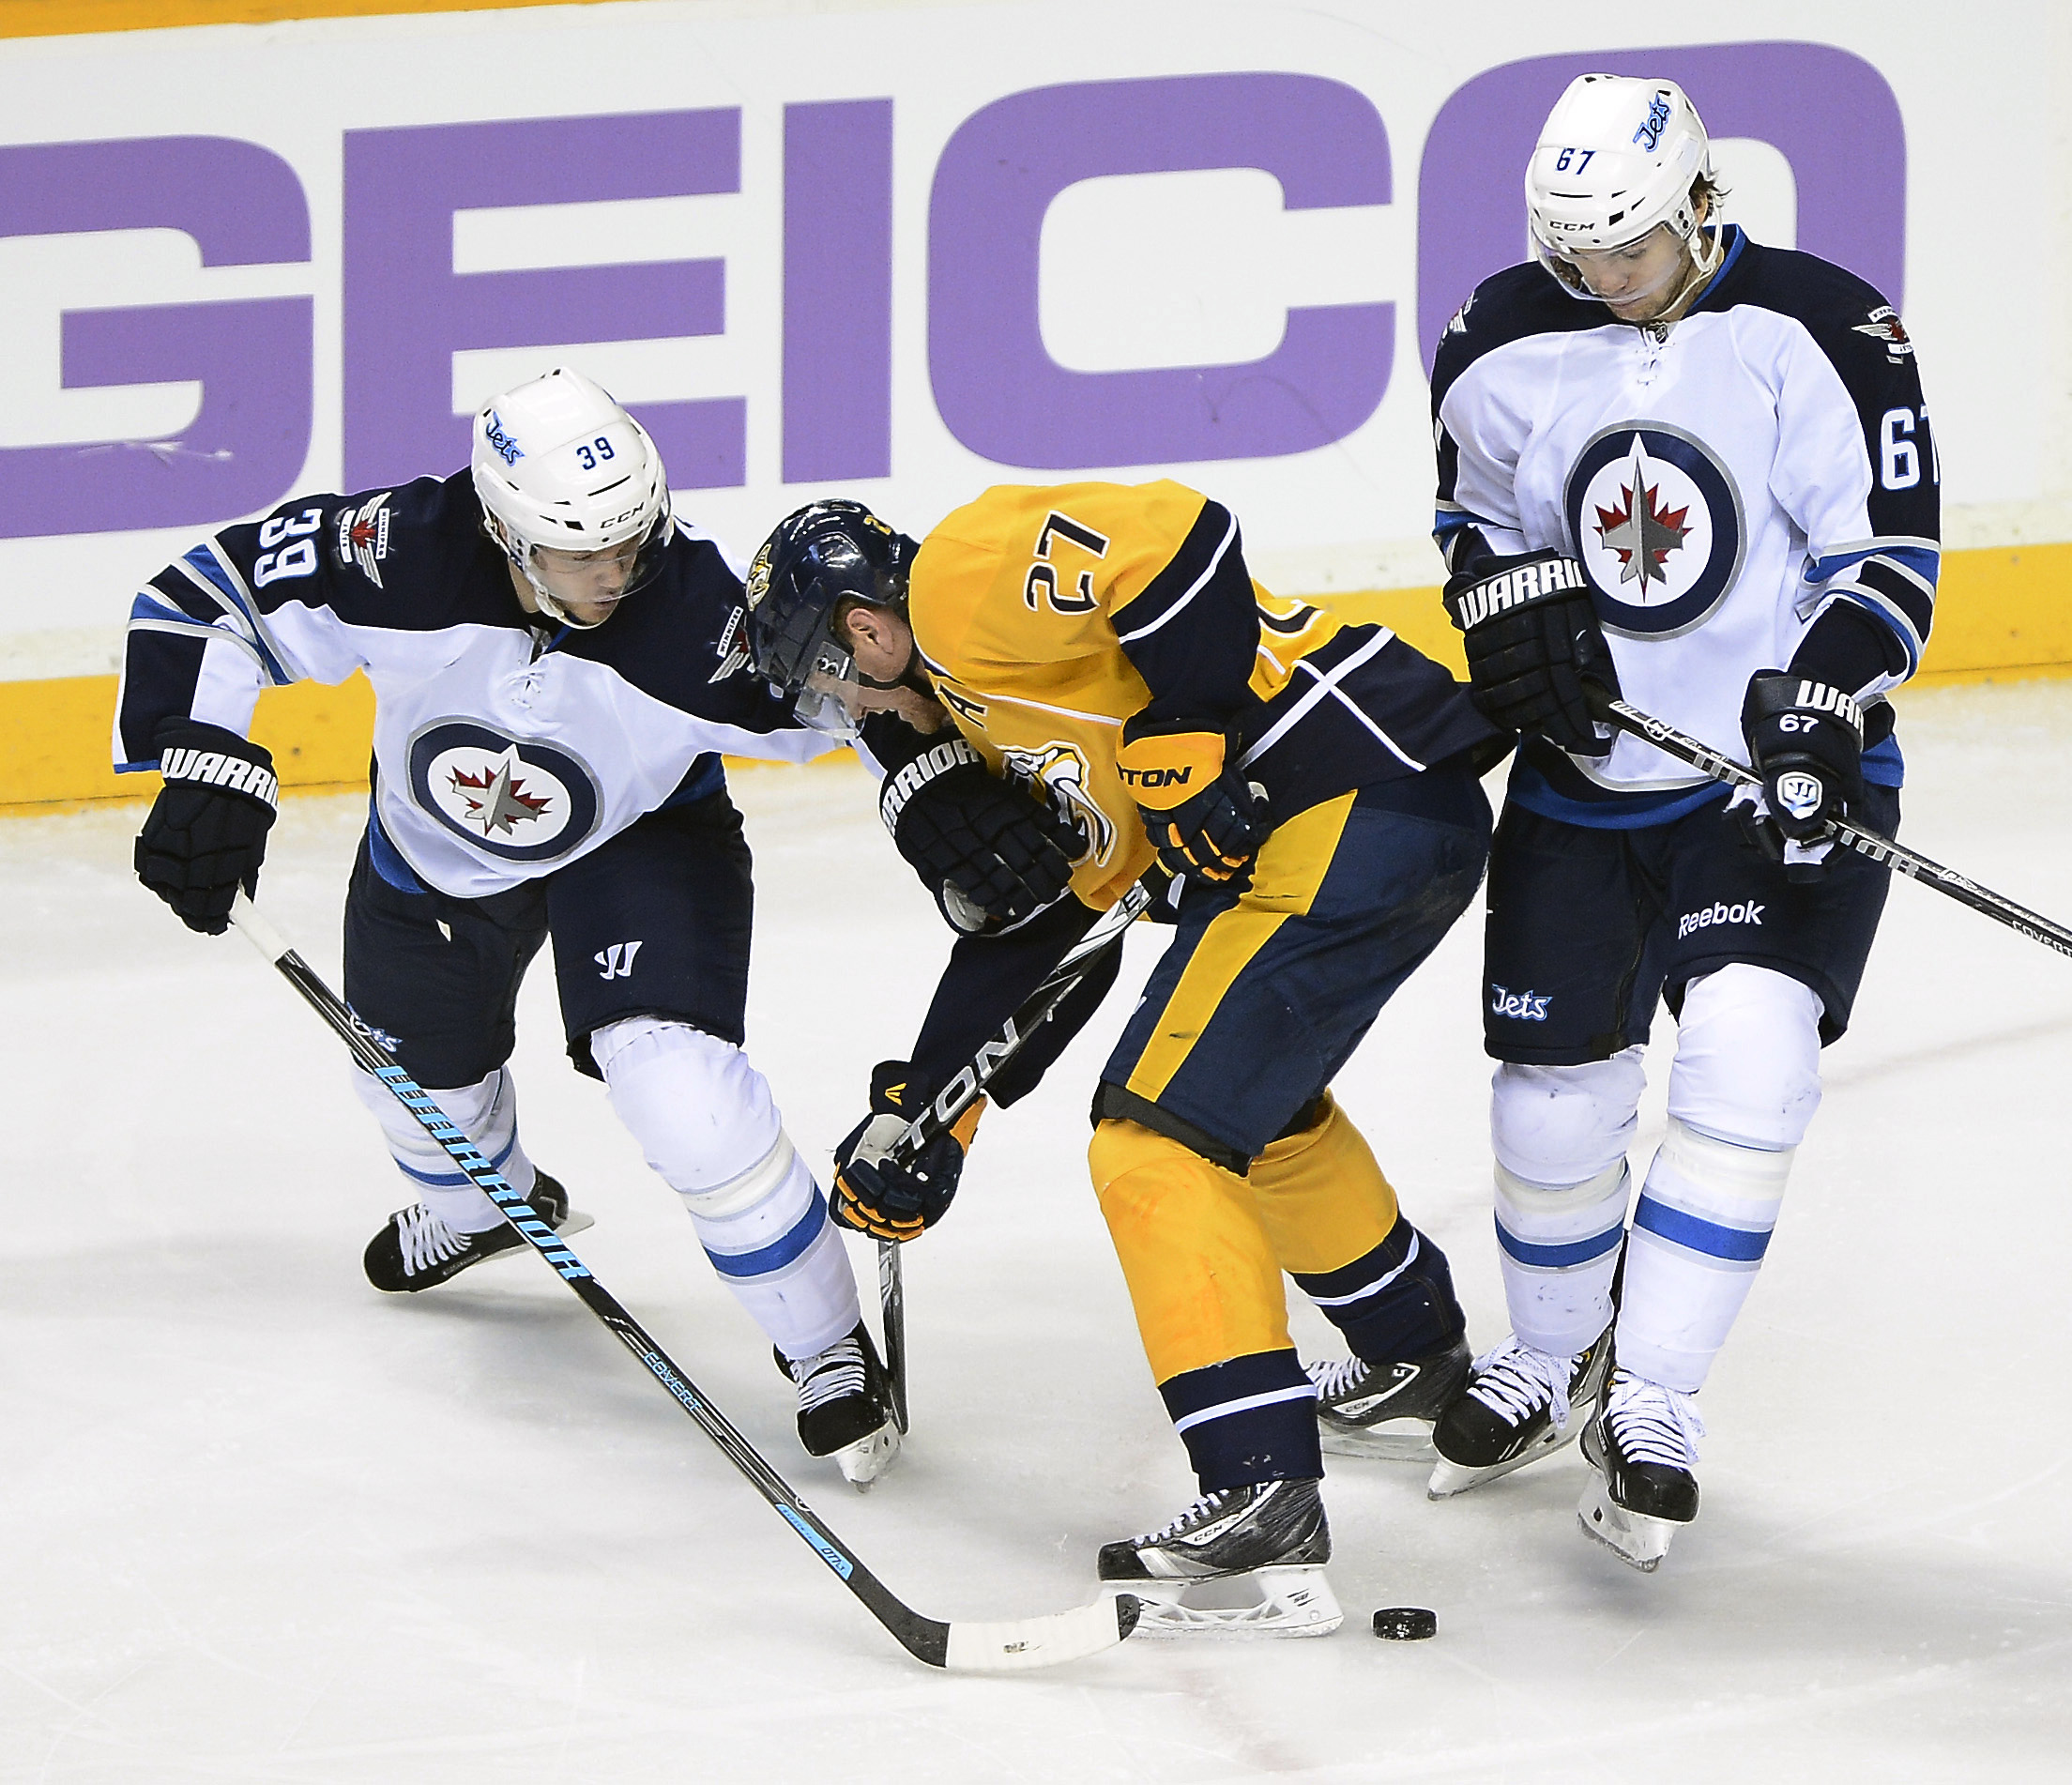 Jets too much for Predators 3-1